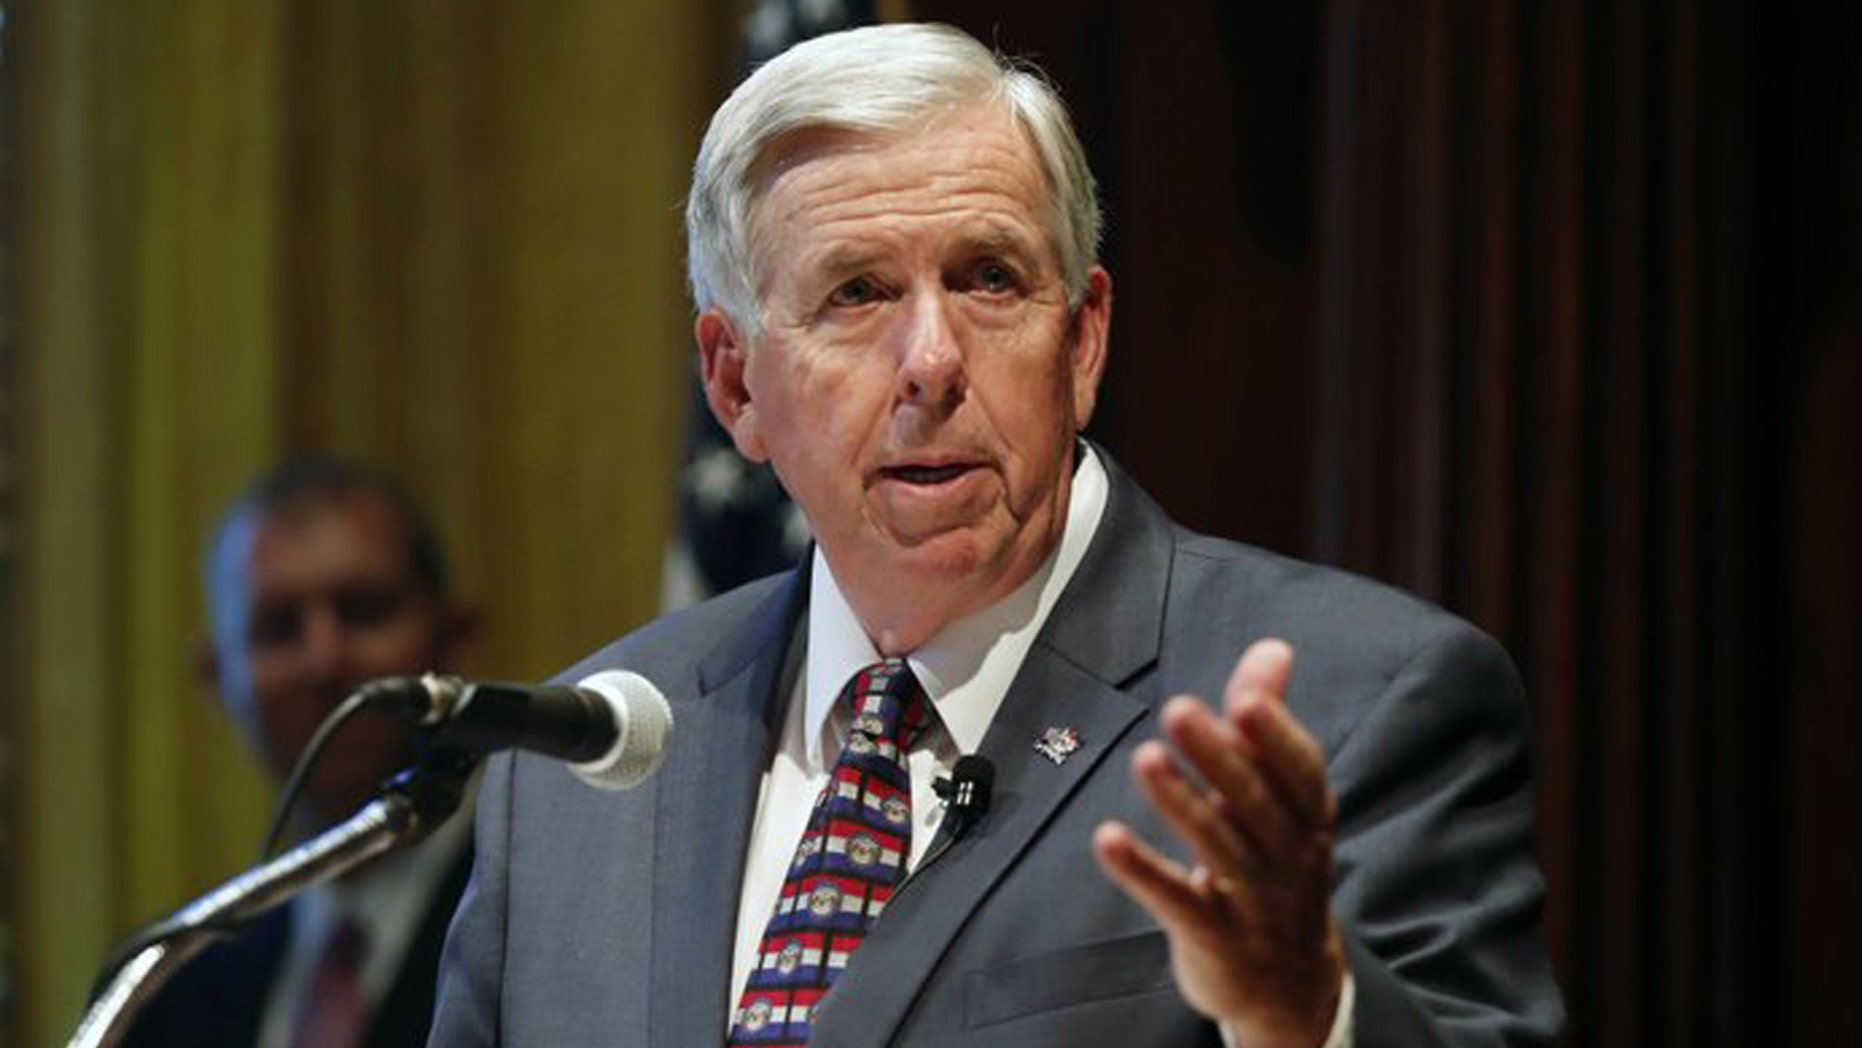 Missouri Gov. Gov. Mike Parson signed a law on Friday that outlaws marriage between 15-year-olds.